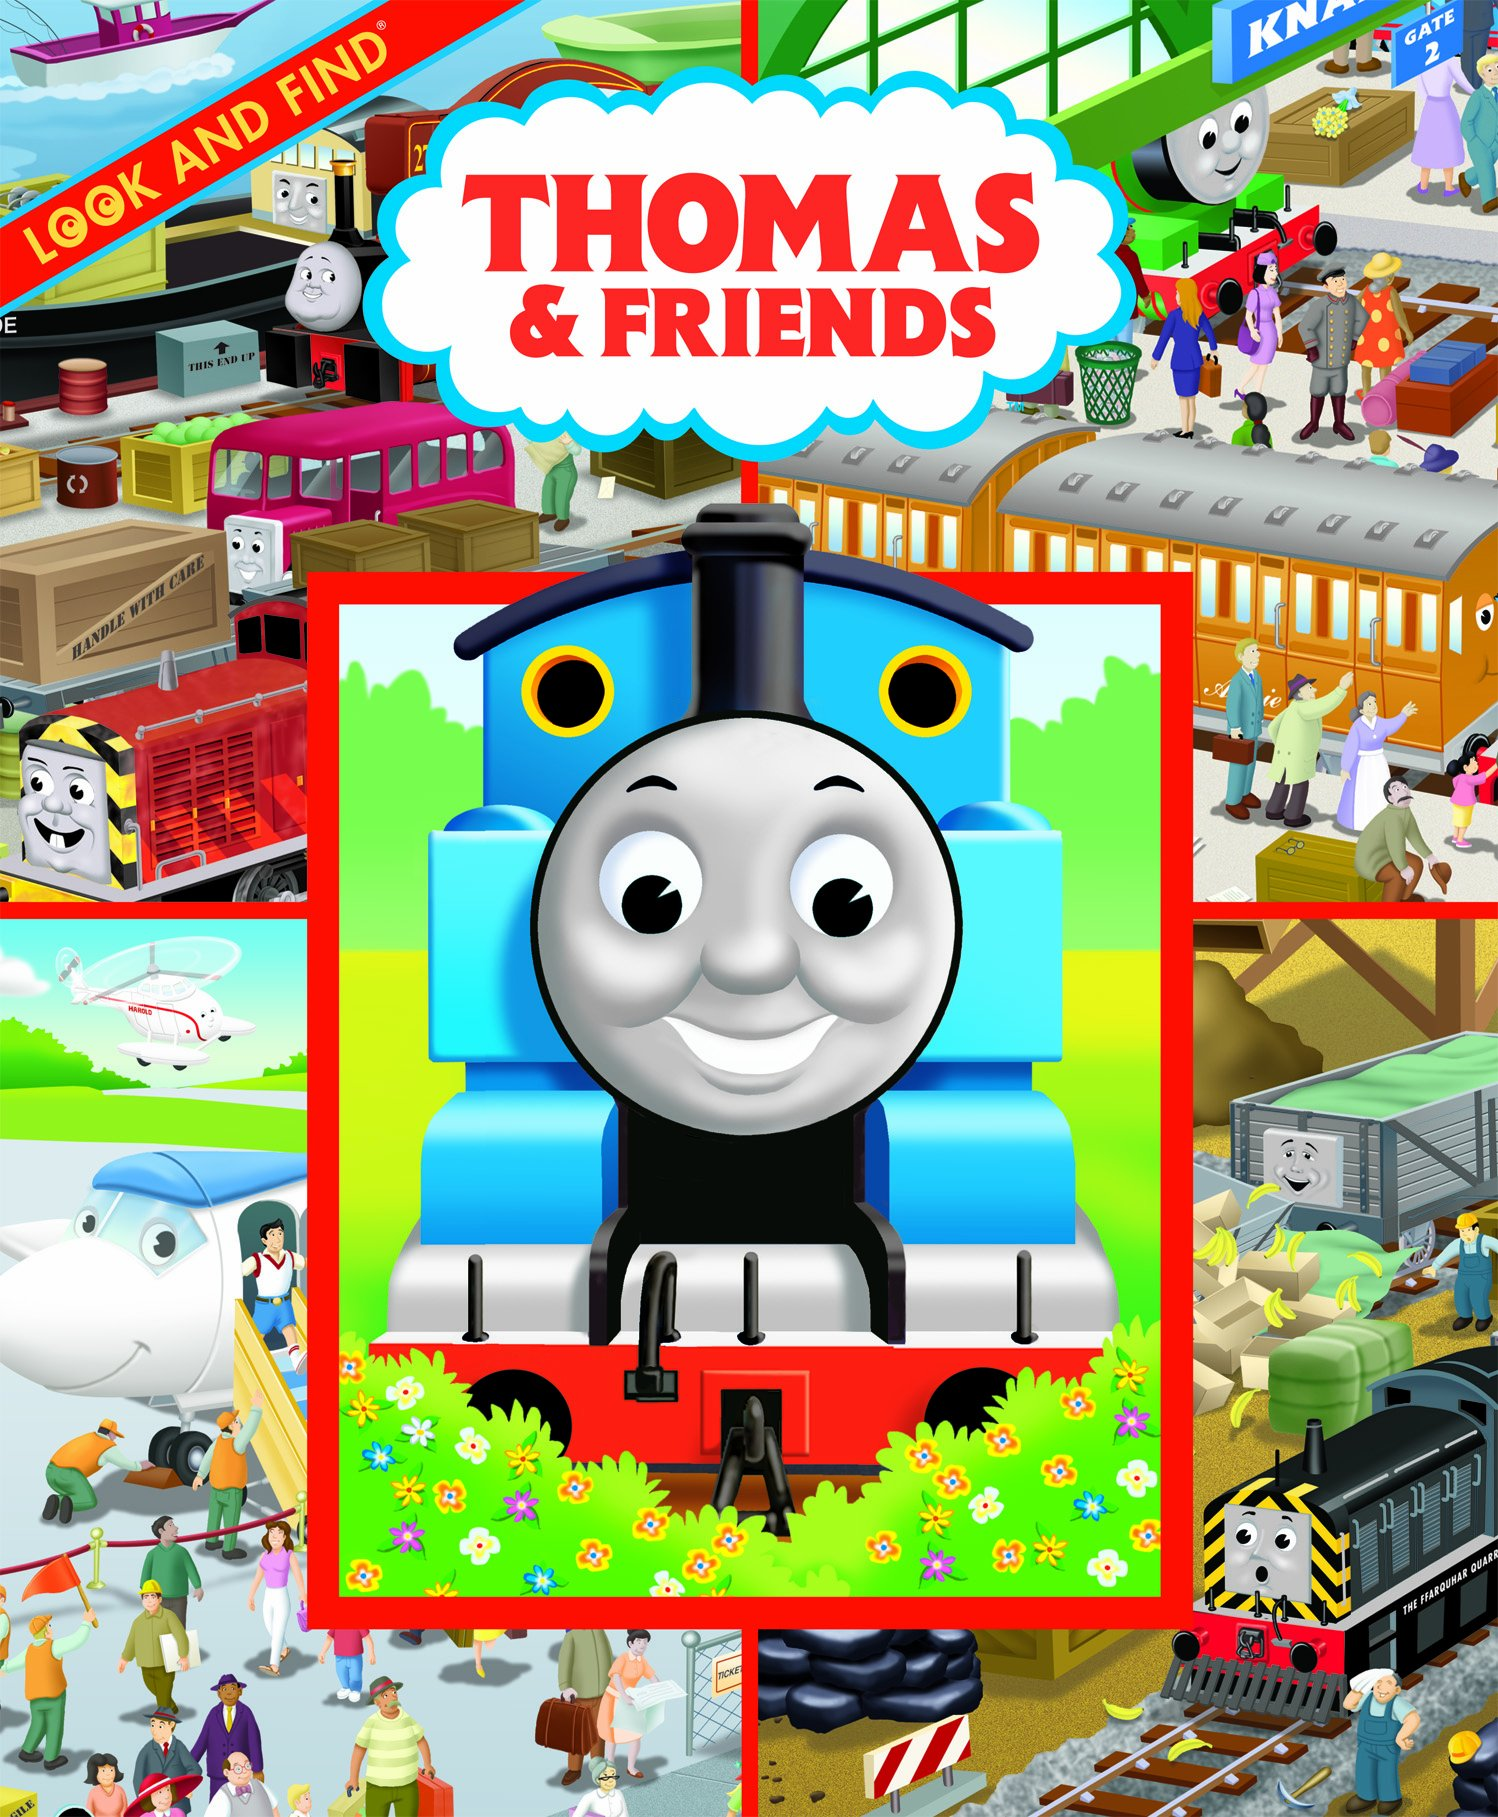 Thomas & Friends Book Looks Up - Lima.stanito.com